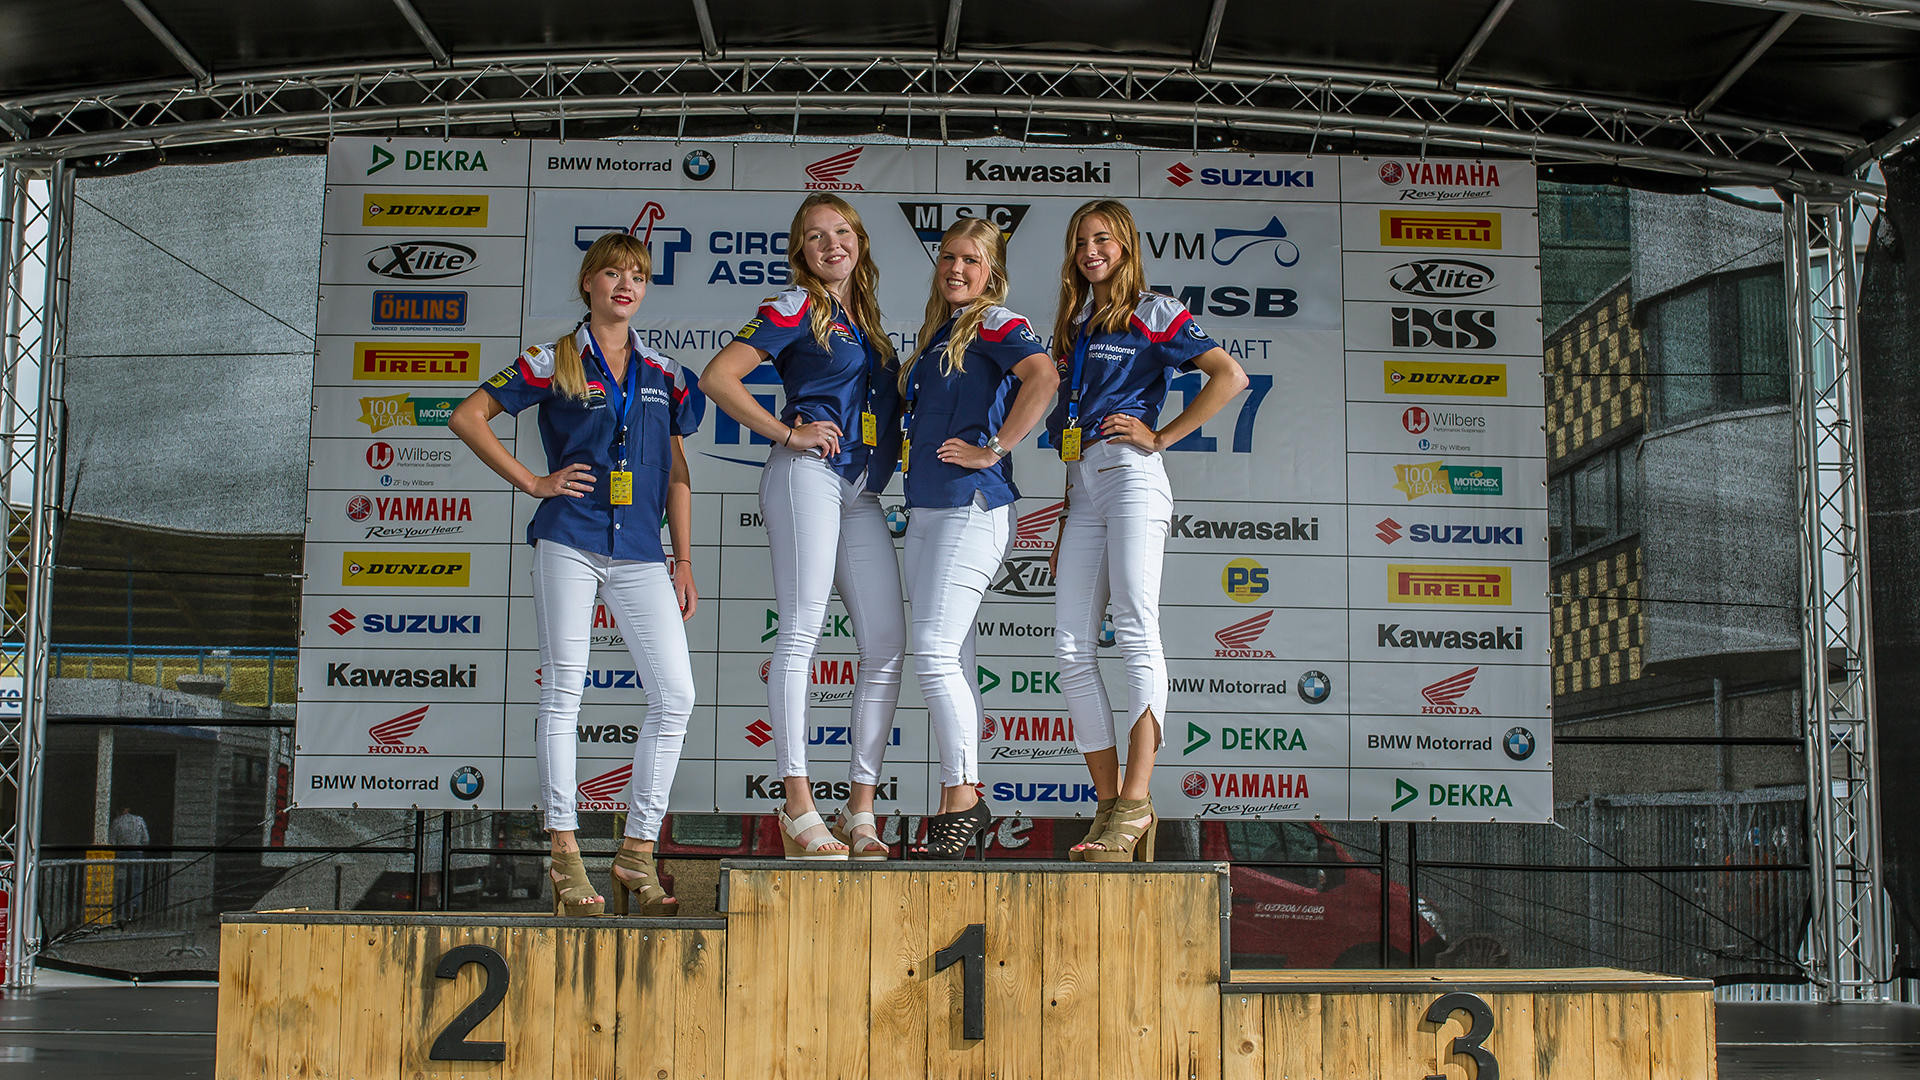 Grid Girls von der IDM in Assen 2017